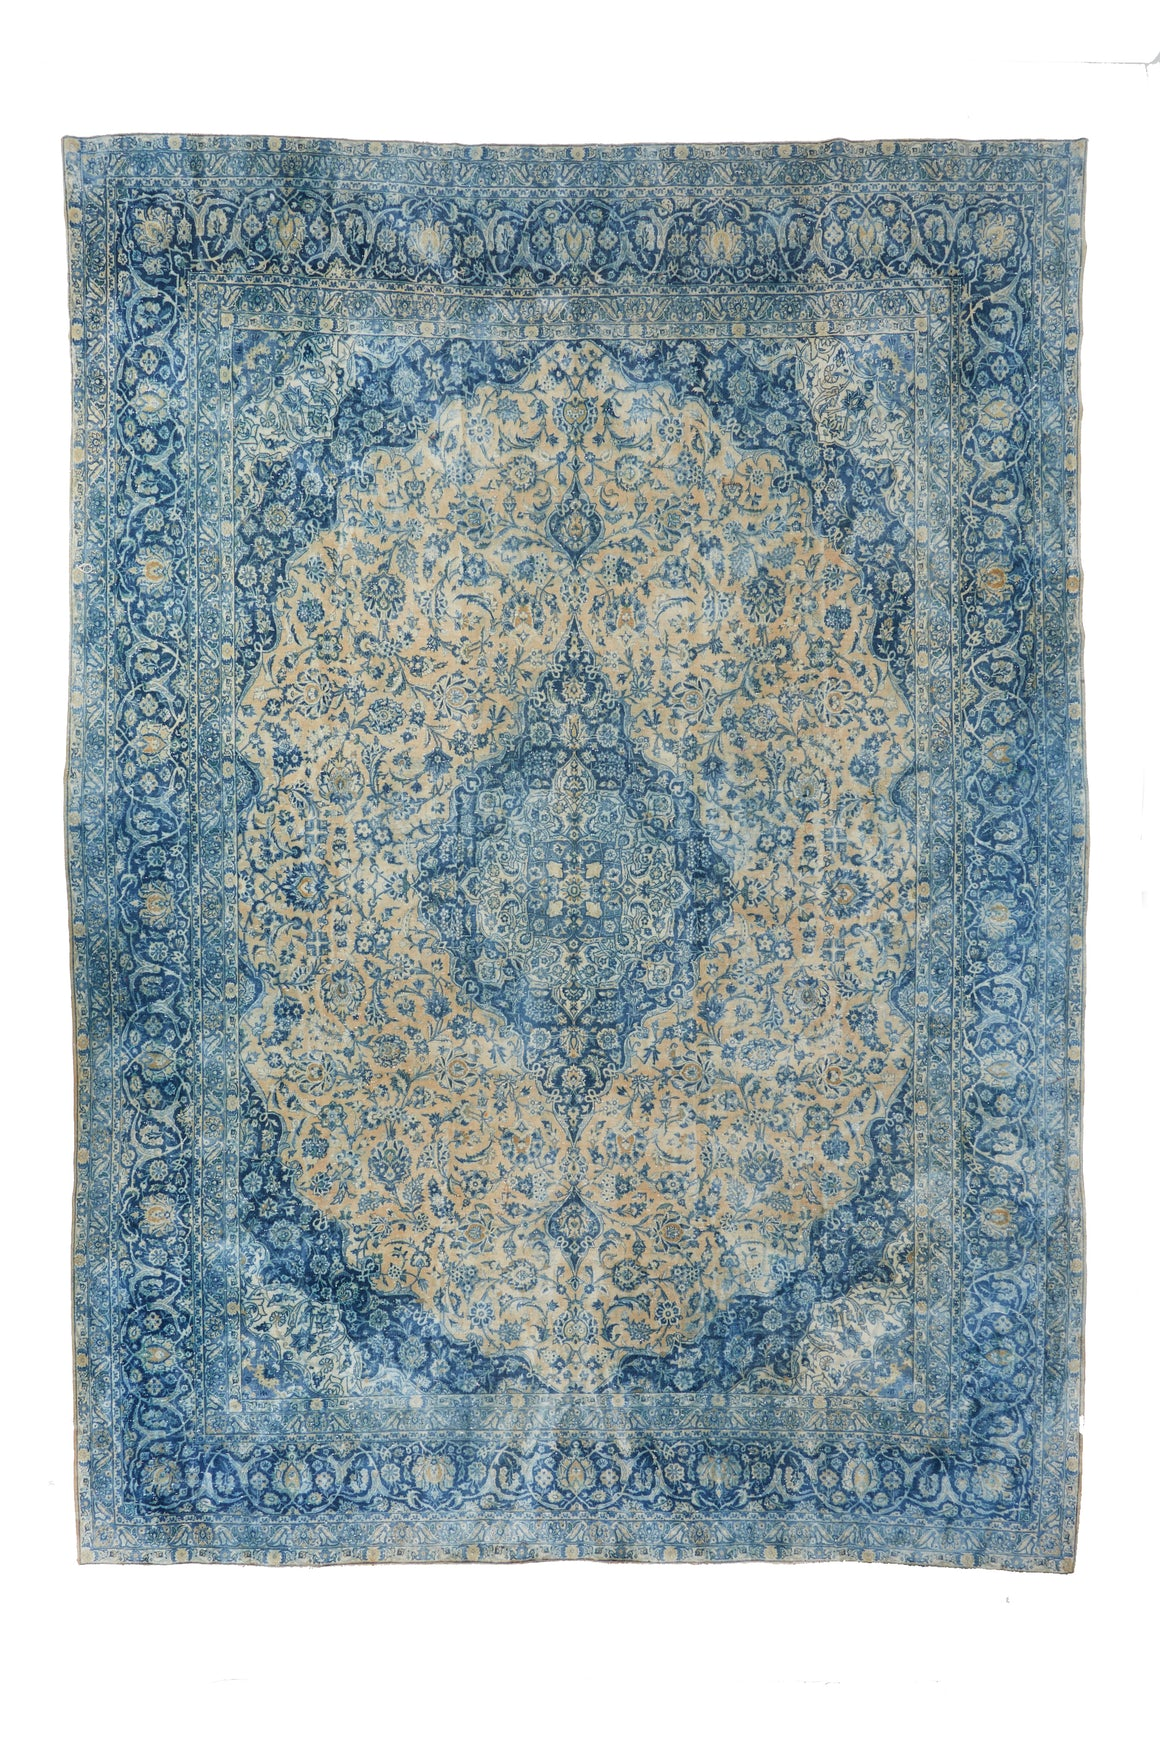 "'Geranium' Palace-Sized Antique Area Rug - 10'6"" x 15' - Canary Lane - Curated Textiles"